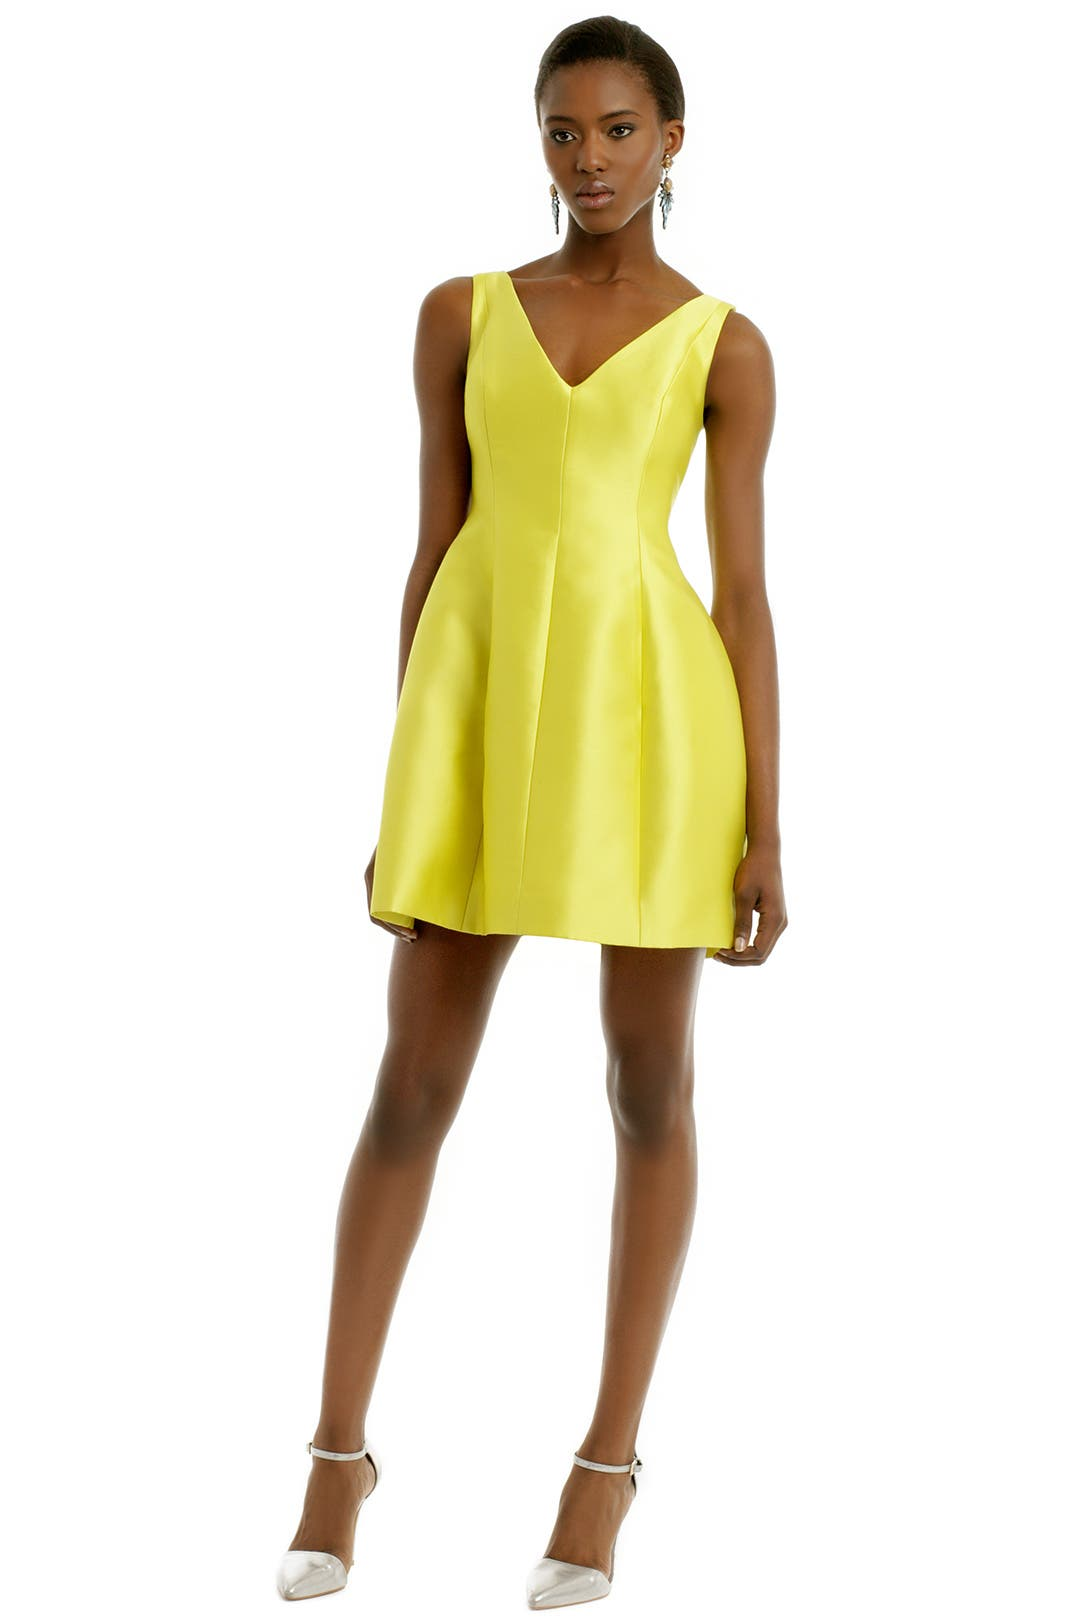 Jolt of Citron Dress by Kate